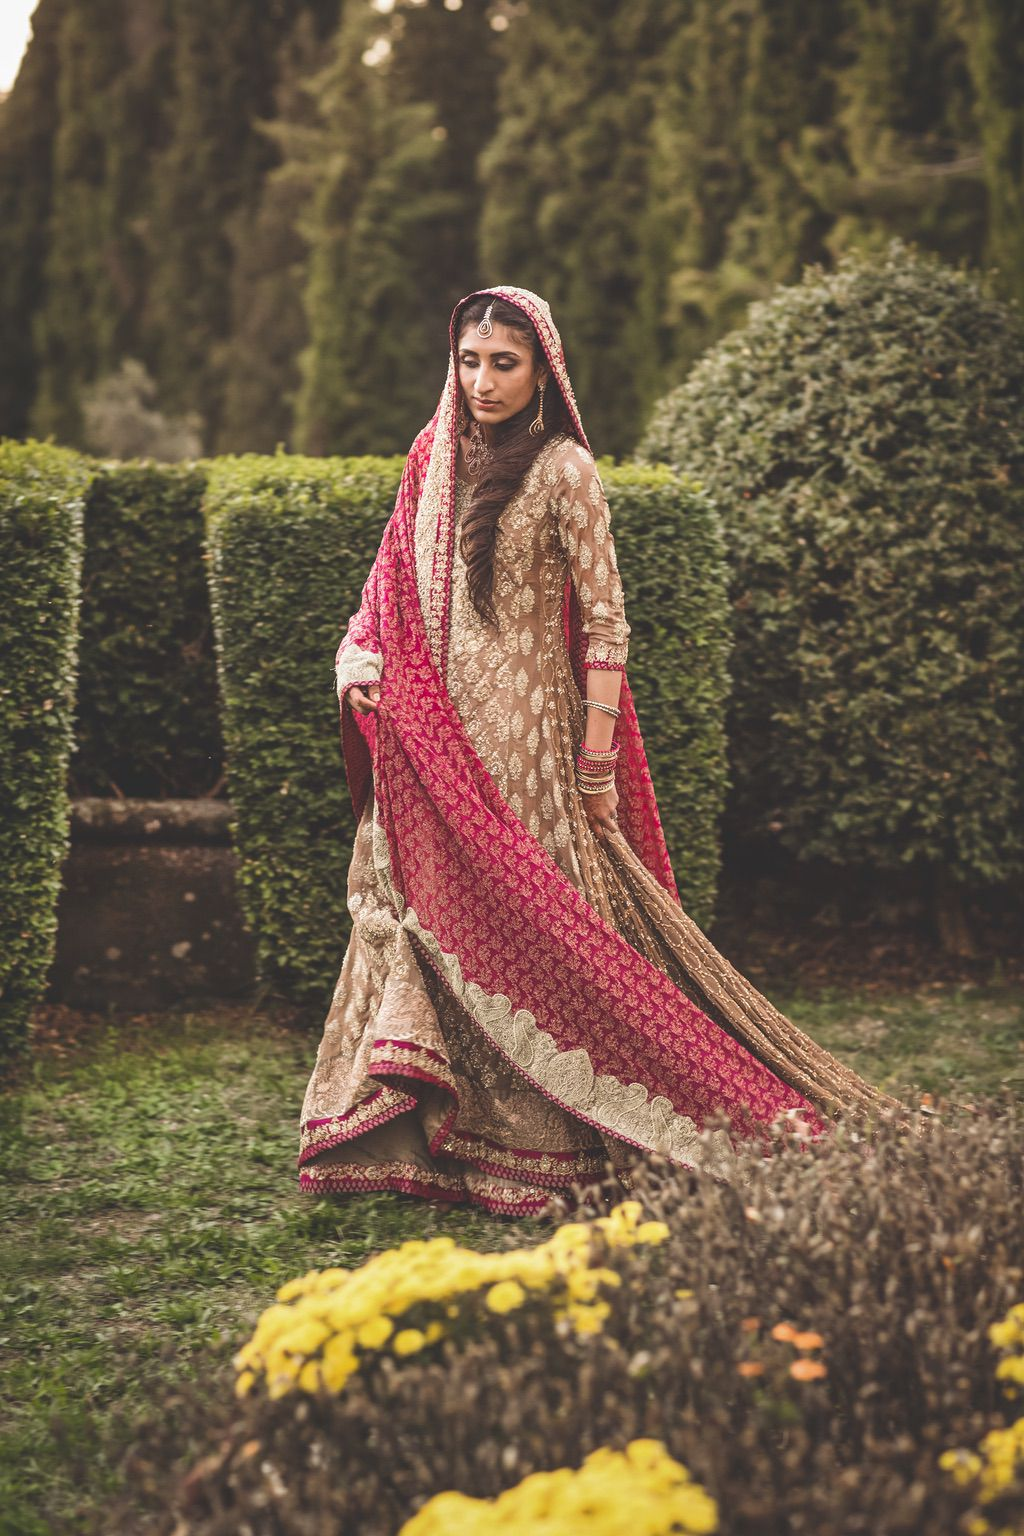 Sana-Safinaz-Pakistani-wedding-dress-bride-villa-catignano-tuscany-082